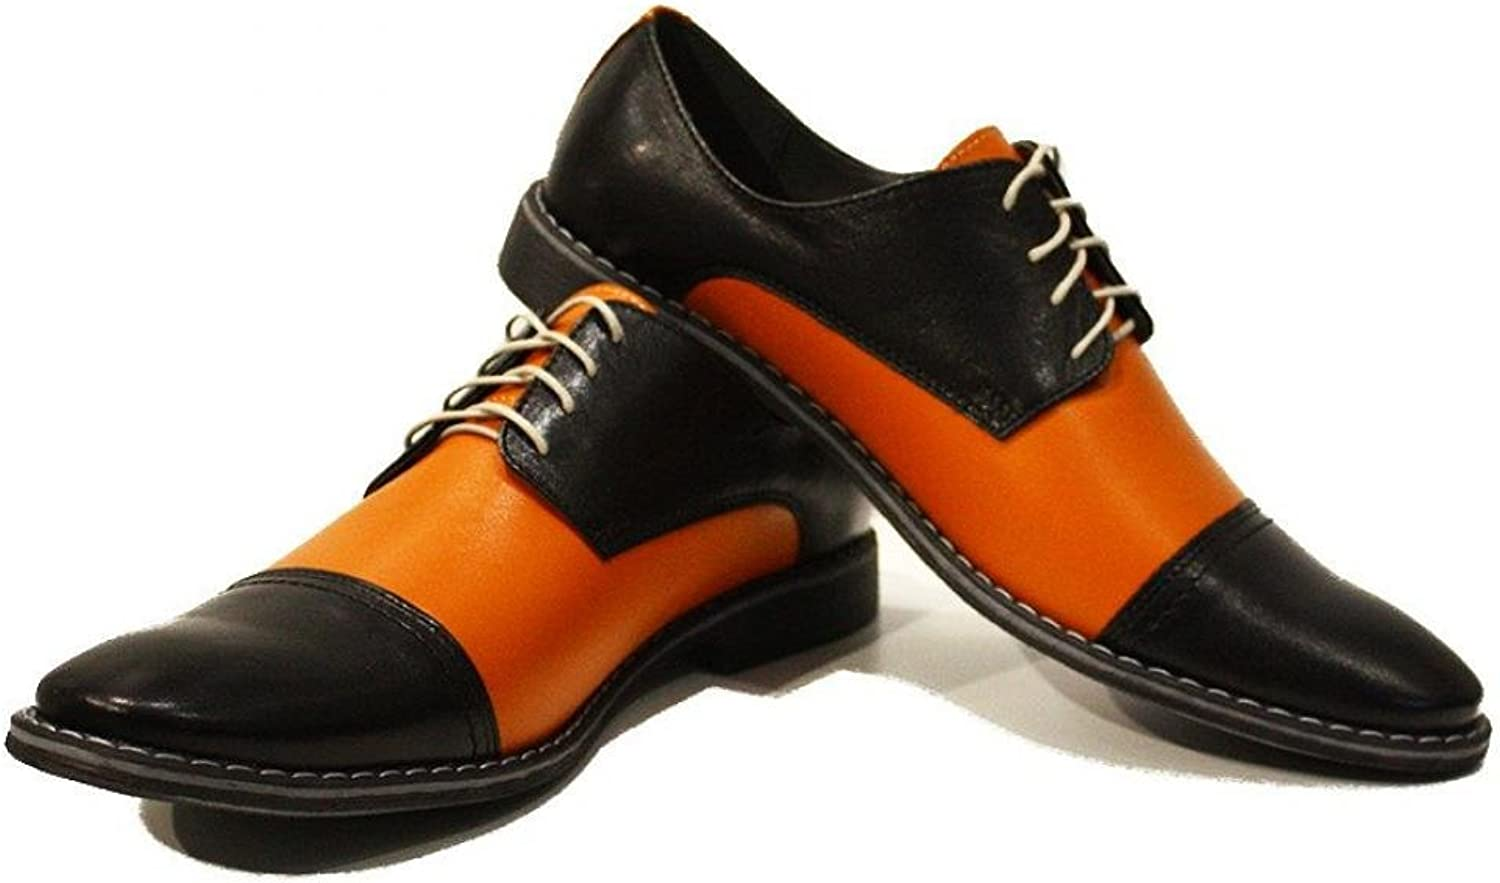 Modello Abaco - Handmade Italian Leather Mens color orange Oxfords Dress shoes - Cowhide Smooth Leather - Lace-Up